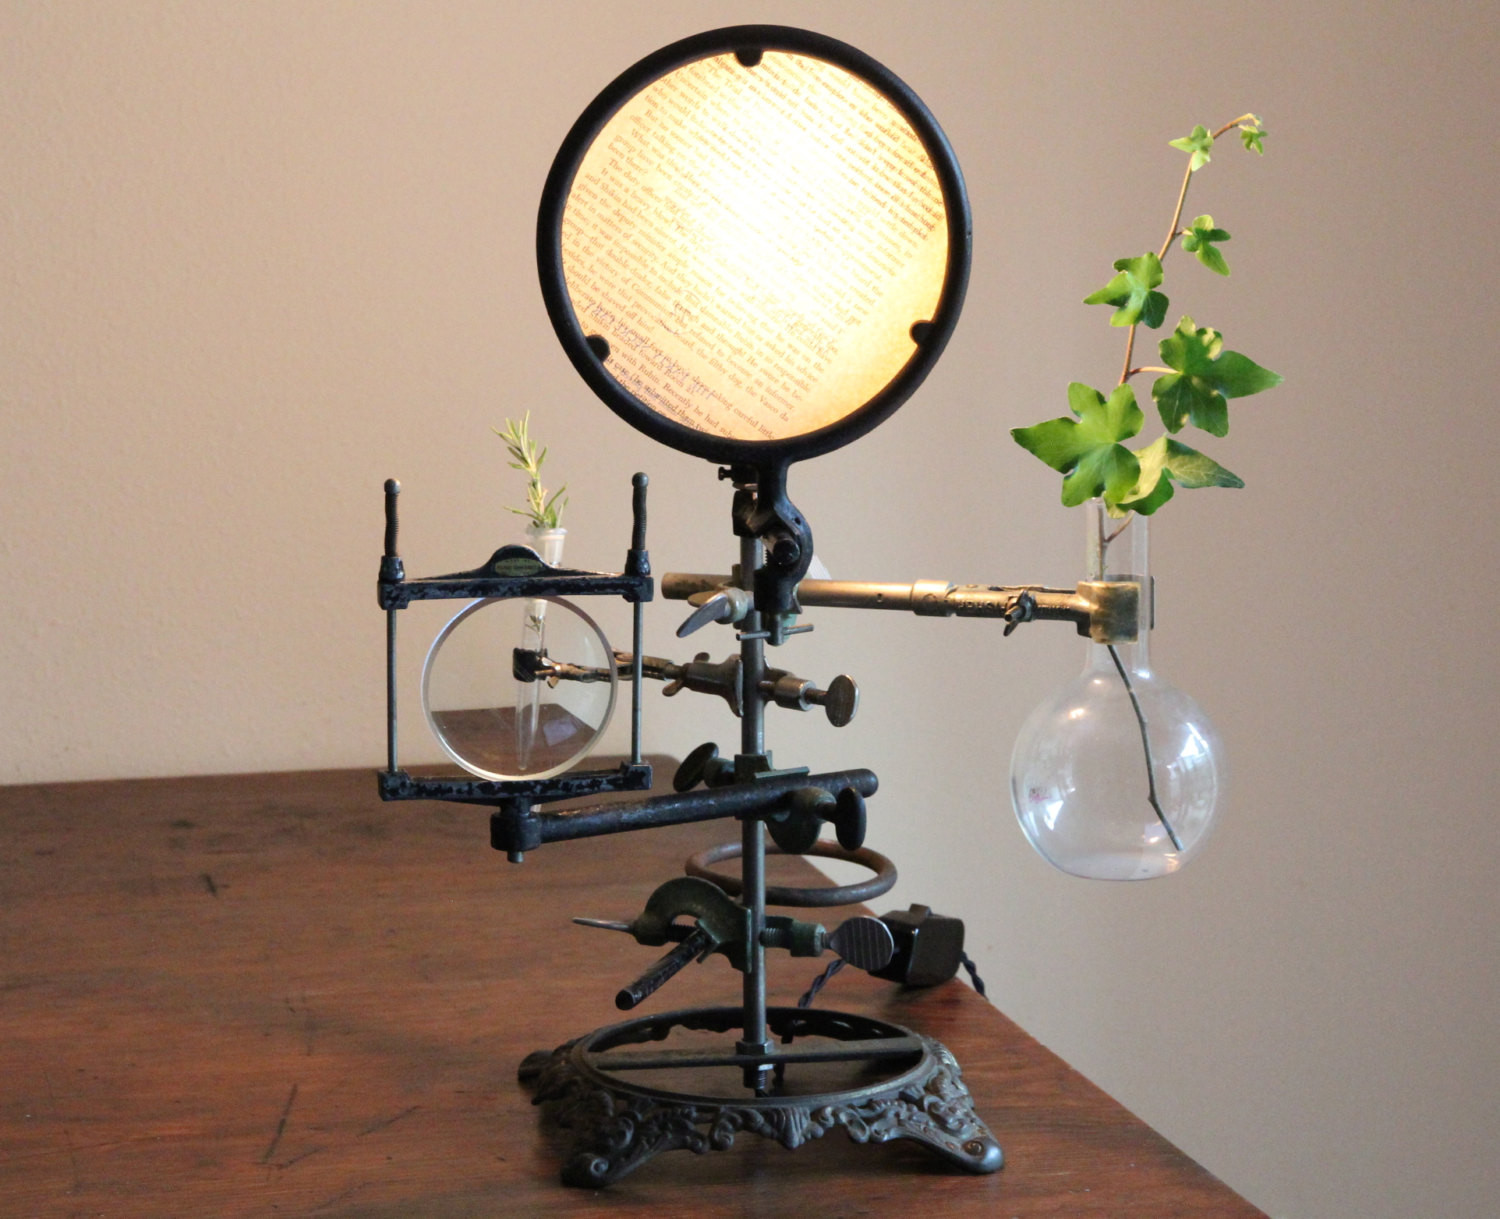 Best ideas about Steampunk Desk Lamp . Save or Pin Steampunk lamp industrial desk lamp chemistry table lamp Now.